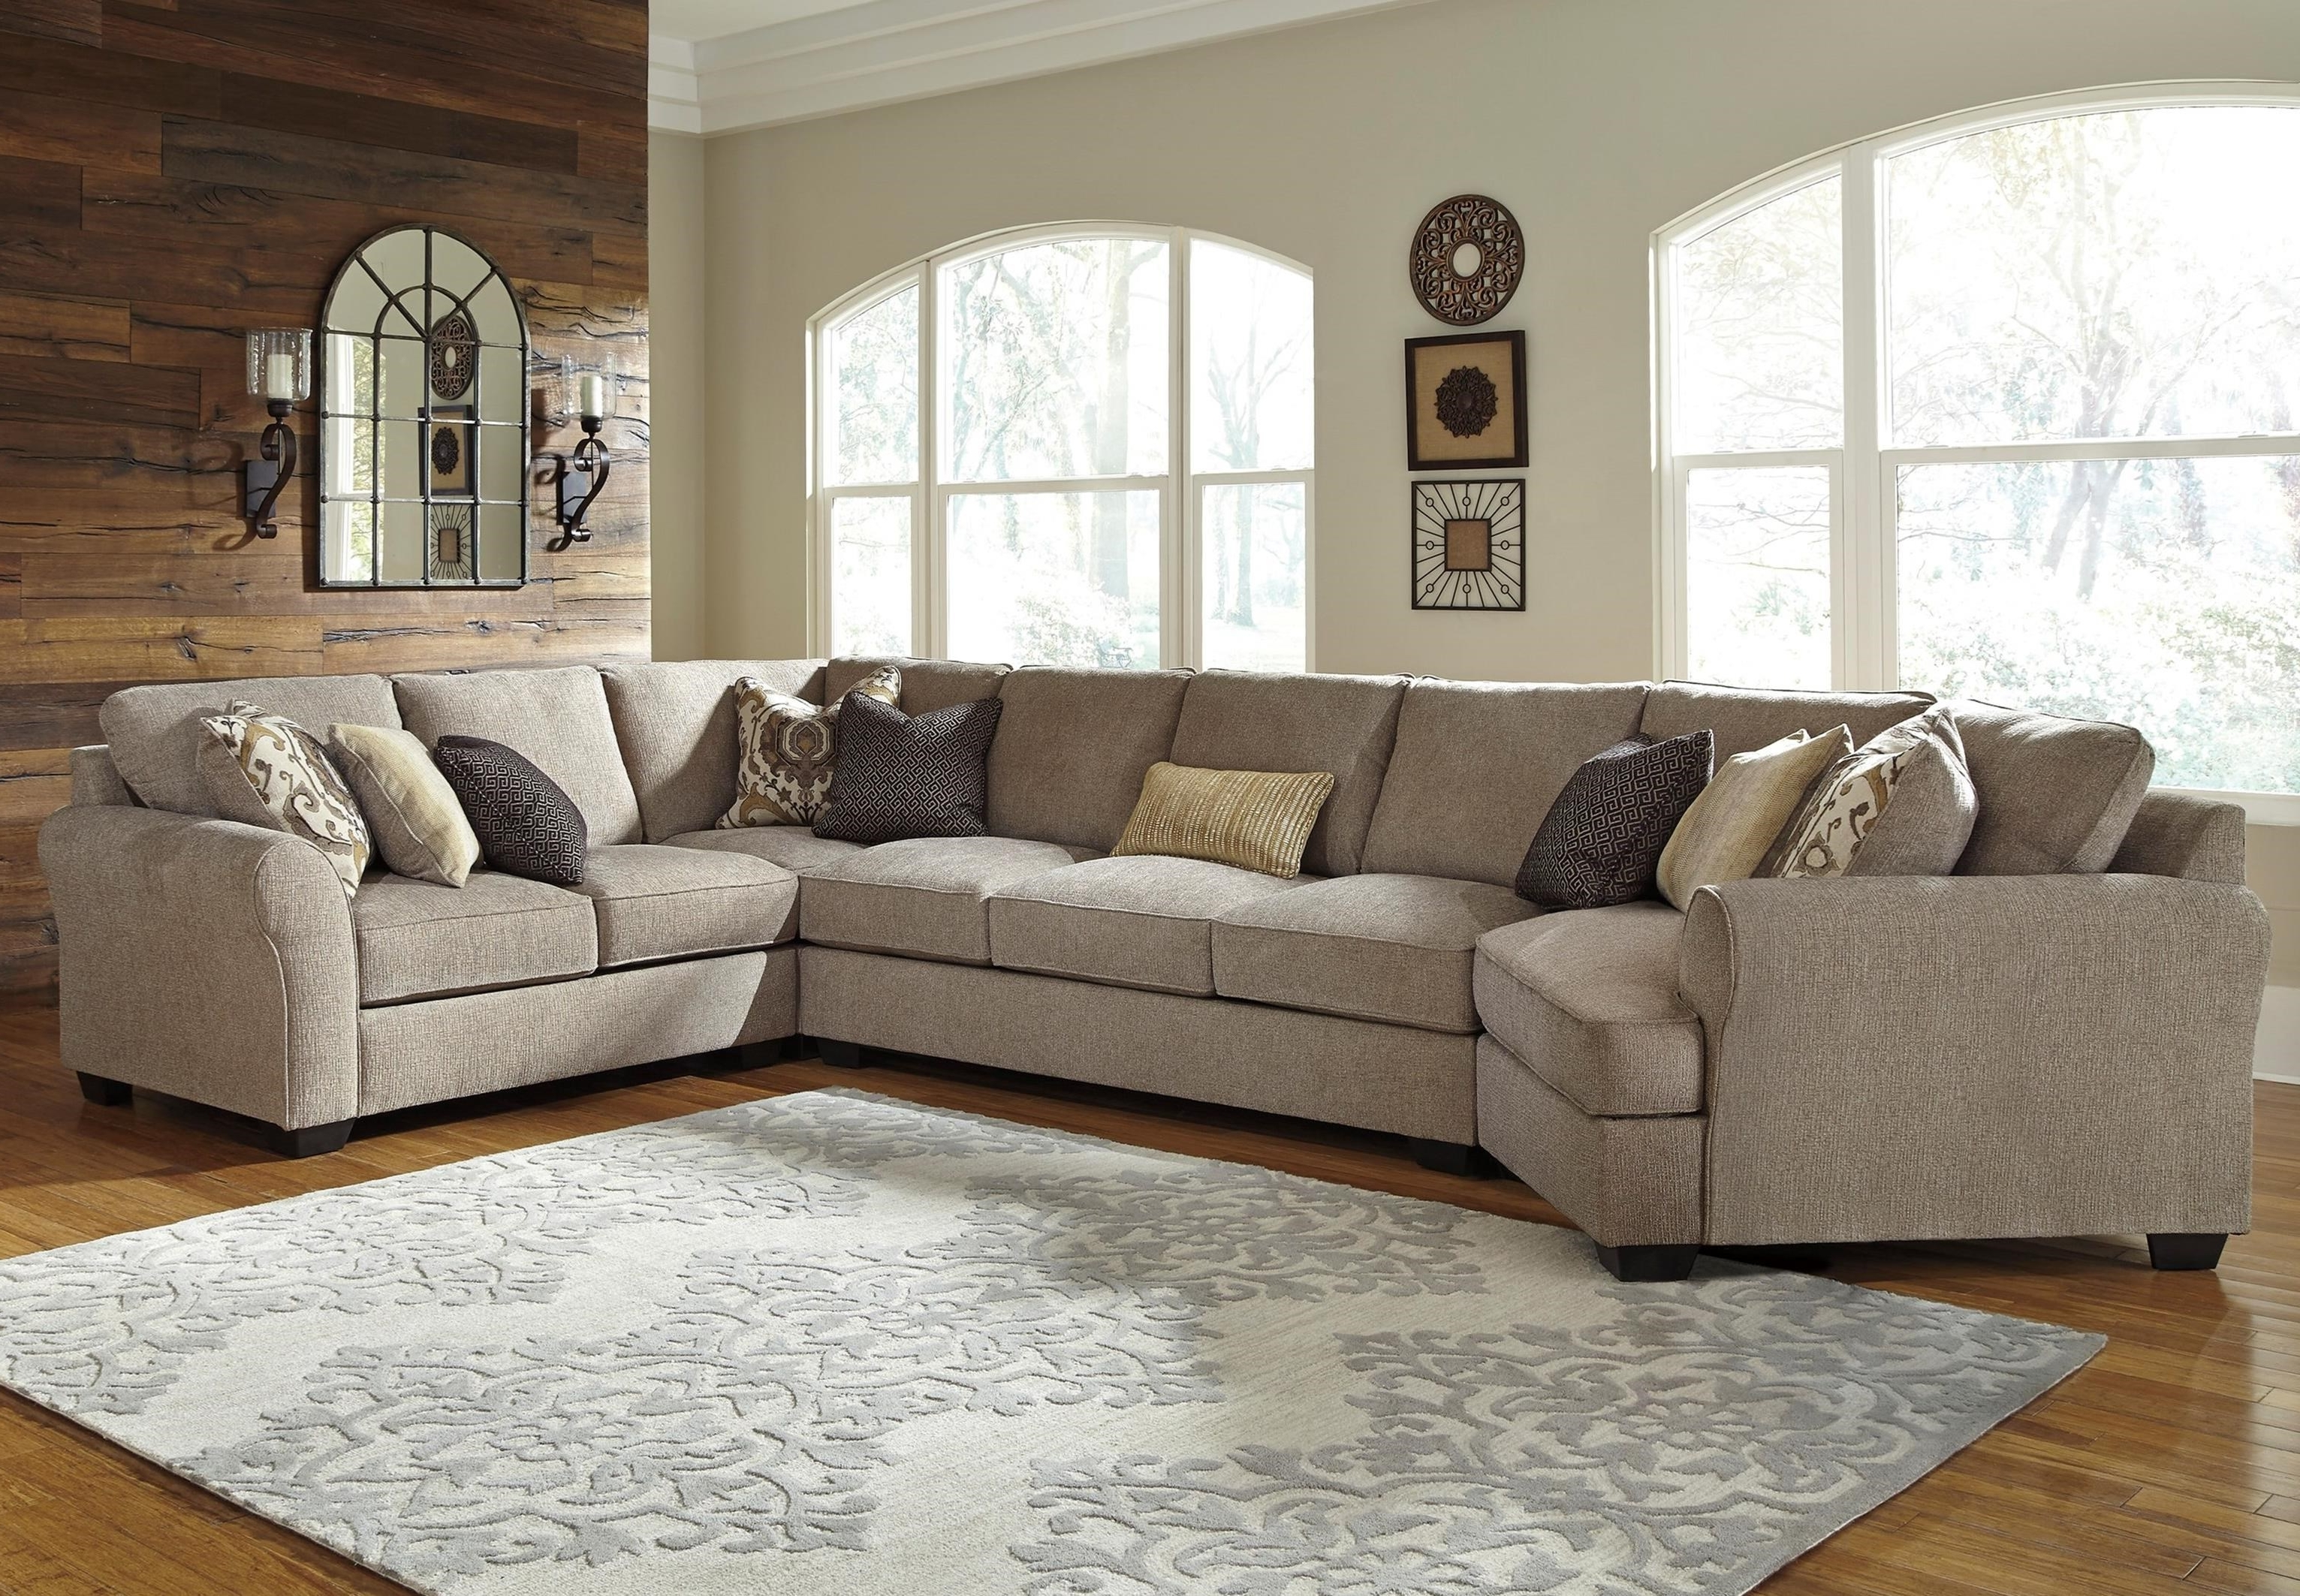 Preferred Benchcraft Pantomine 4 Piece Sectional With Left Cuddler & Armless In Sectional Sofas With Cuddler (View 2 of 20)